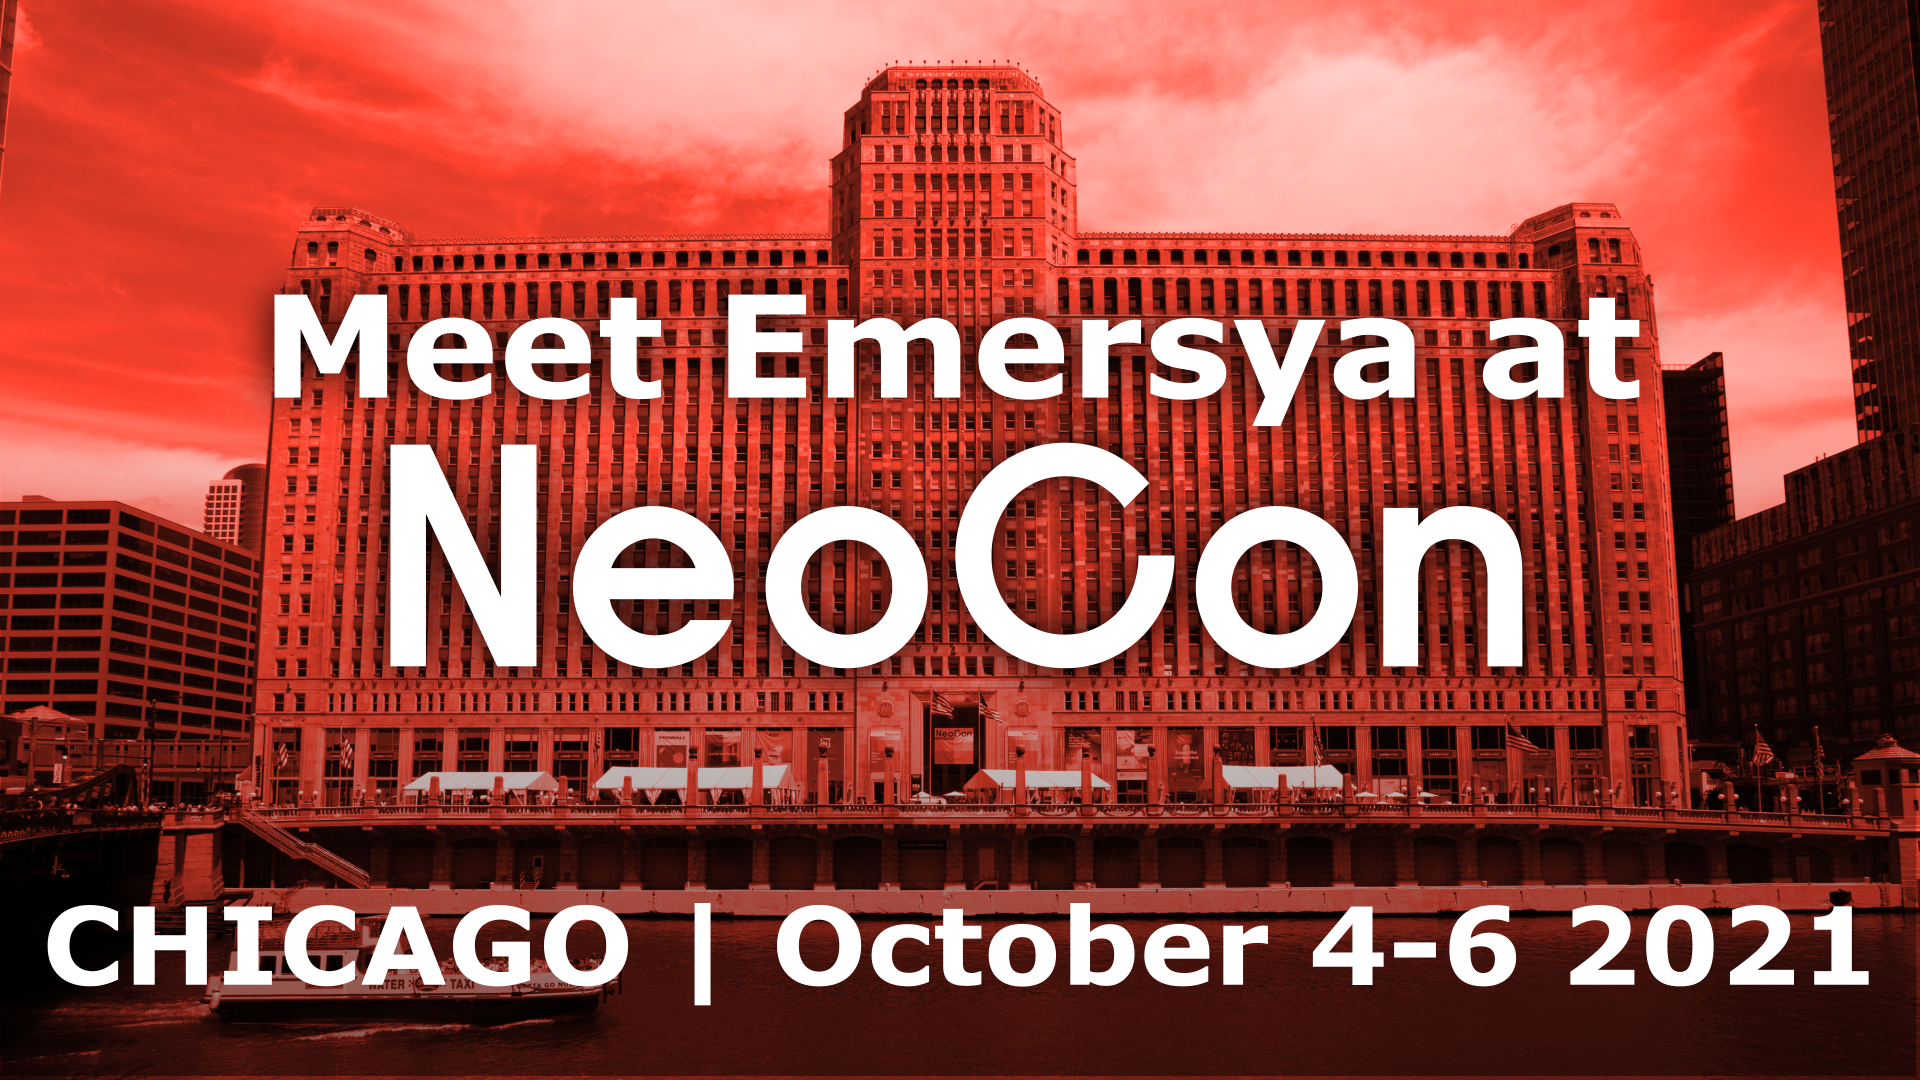 Image of Emersya is off to Chicago for NeoCon 2021